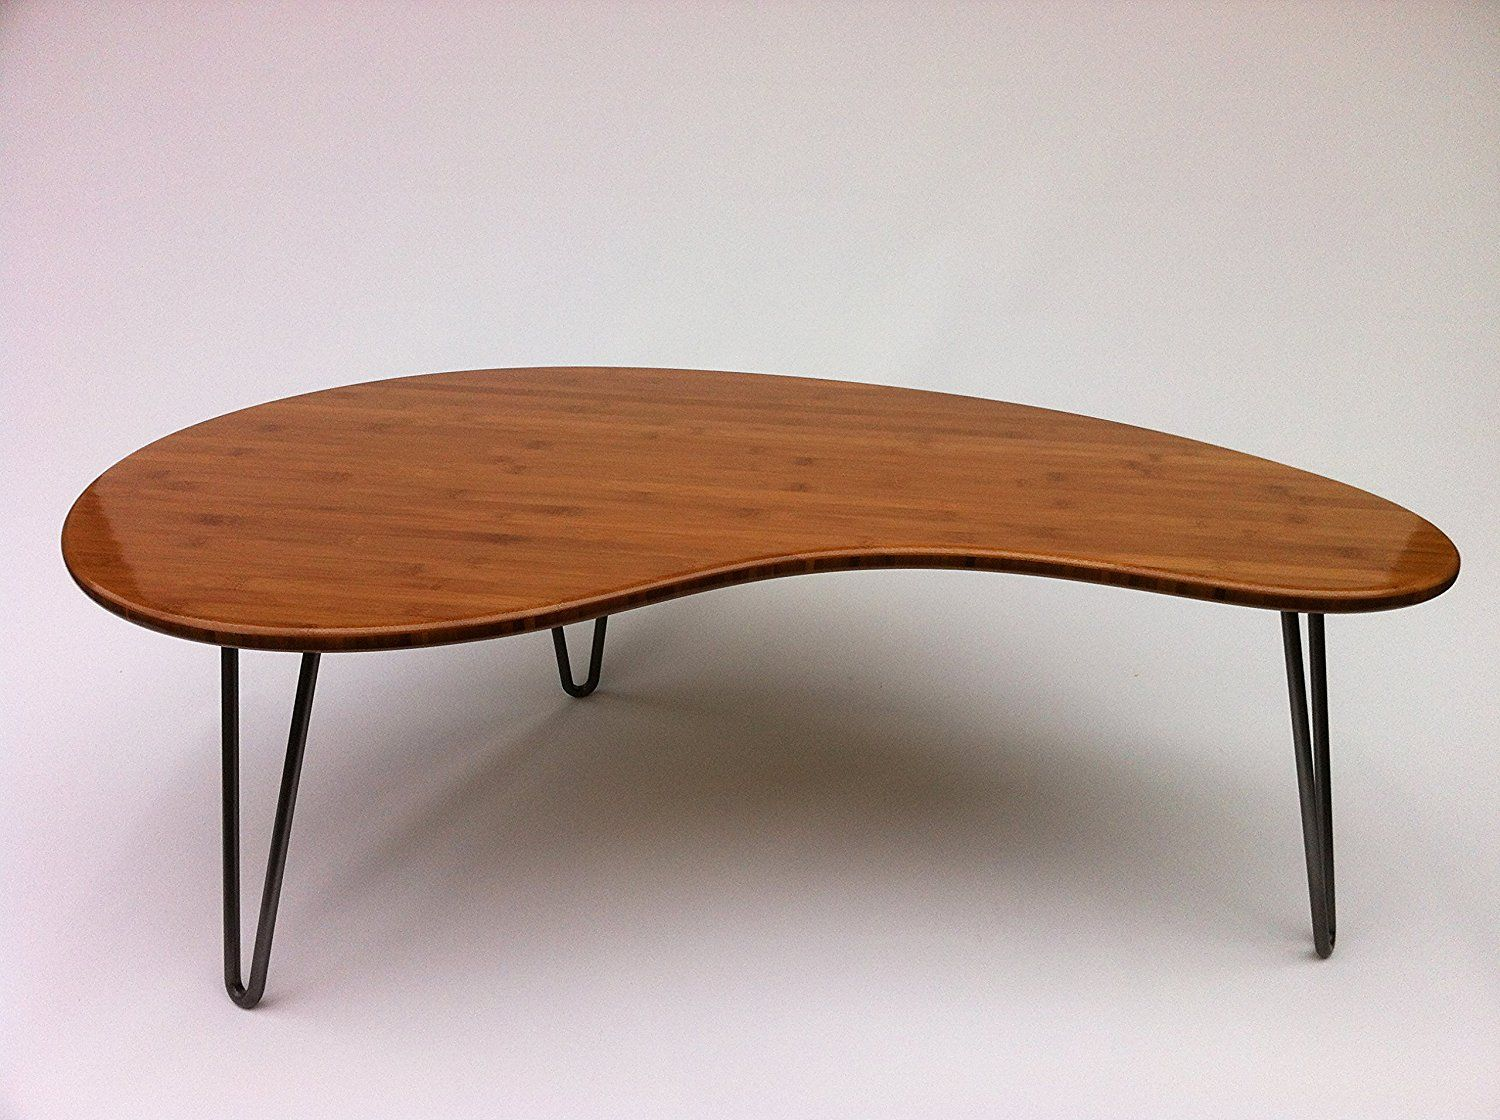 Image Result For Jelly Beans Table Retro Mid Century Modern Coffee Table Danish Modern Coffee Table Coffee Table [ 1120 x 1500 Pixel ]